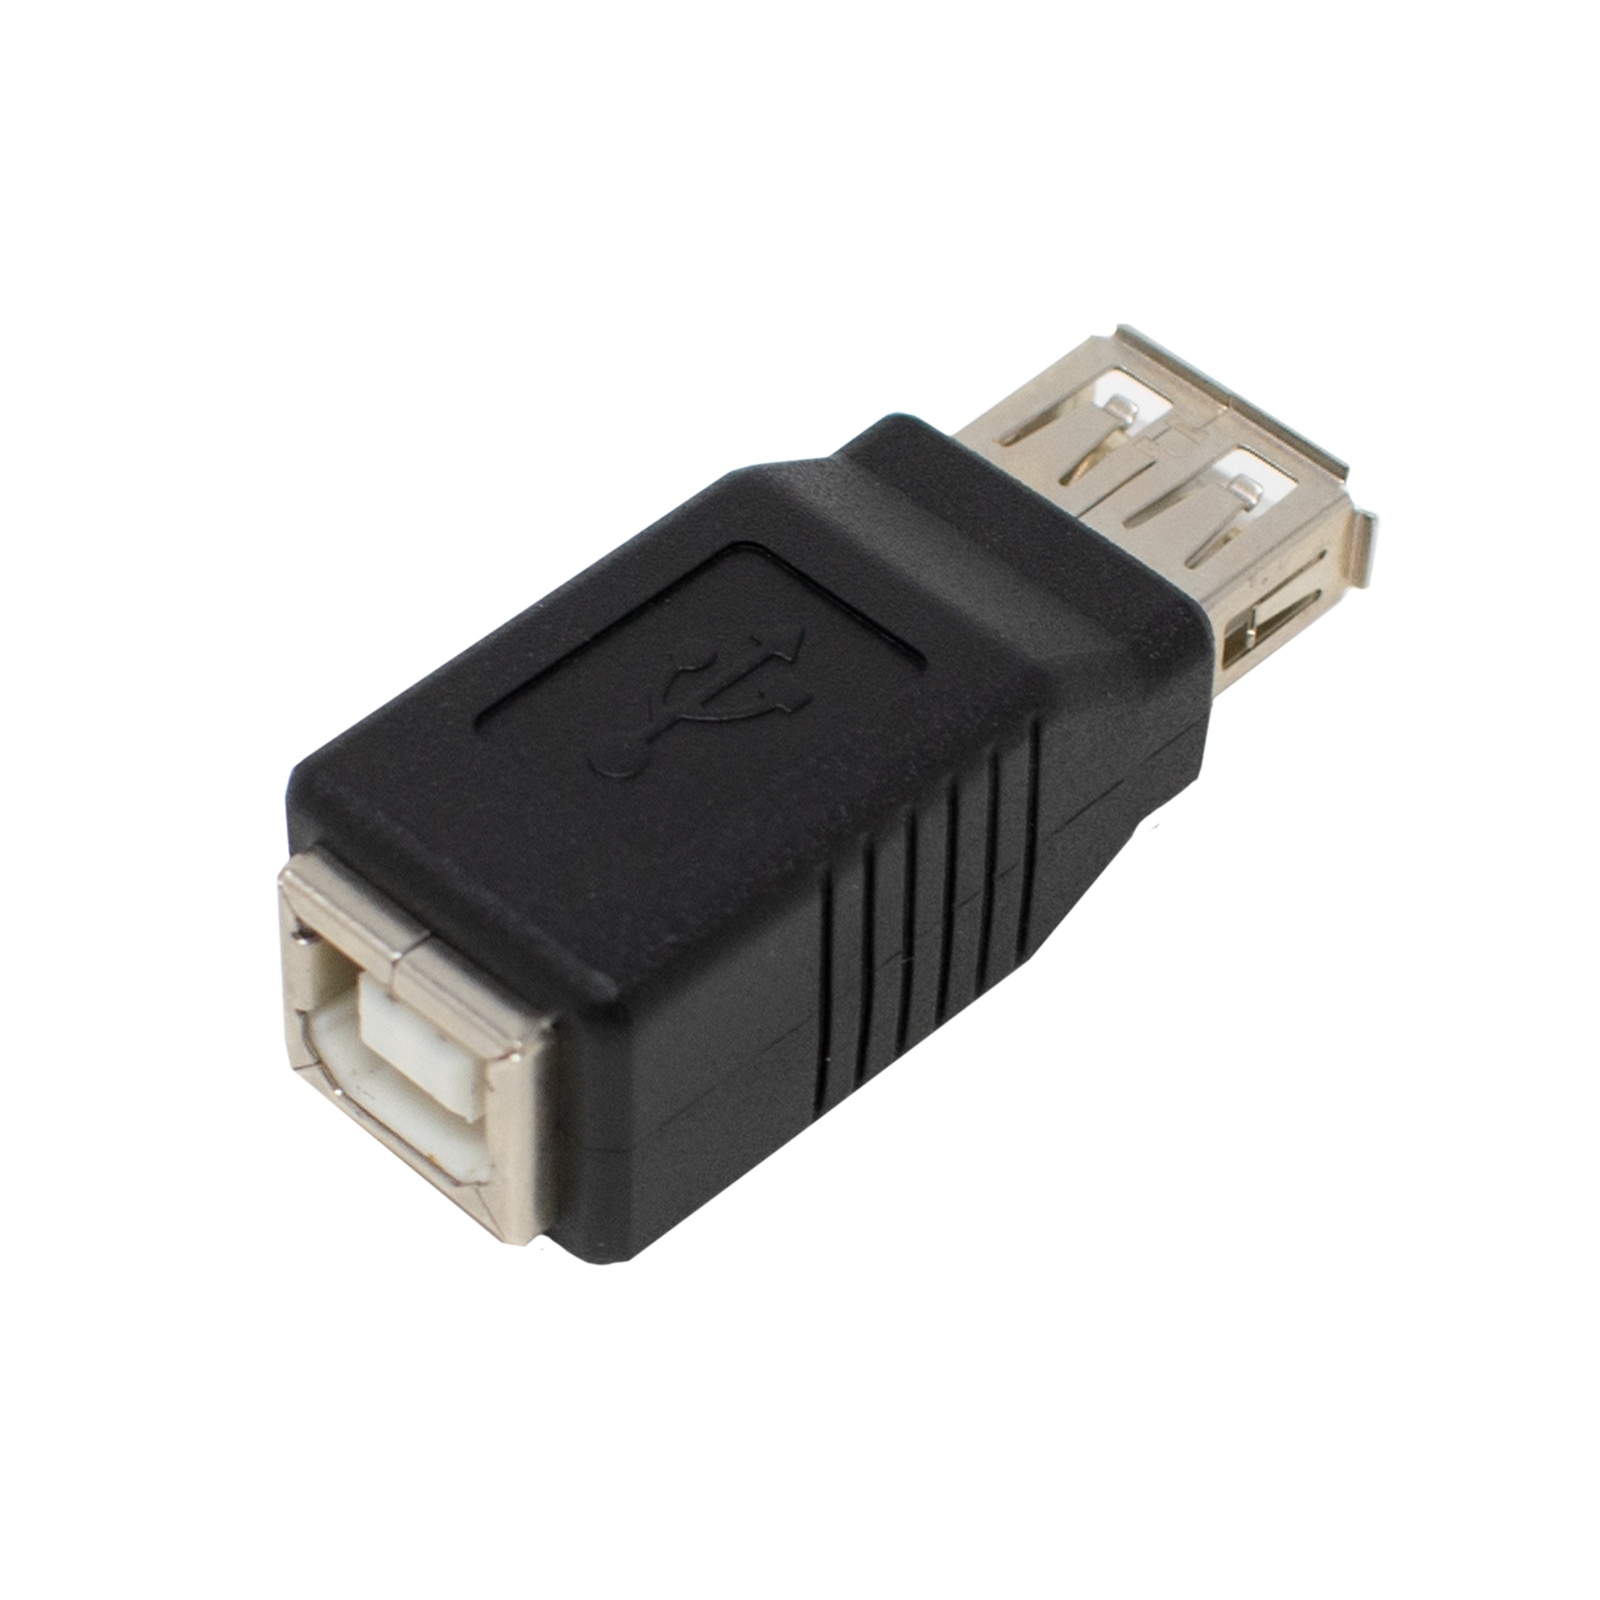 USB 2.0 Type A (F) to Type B (F) Adapter Gender Changer | High Speed Compliant